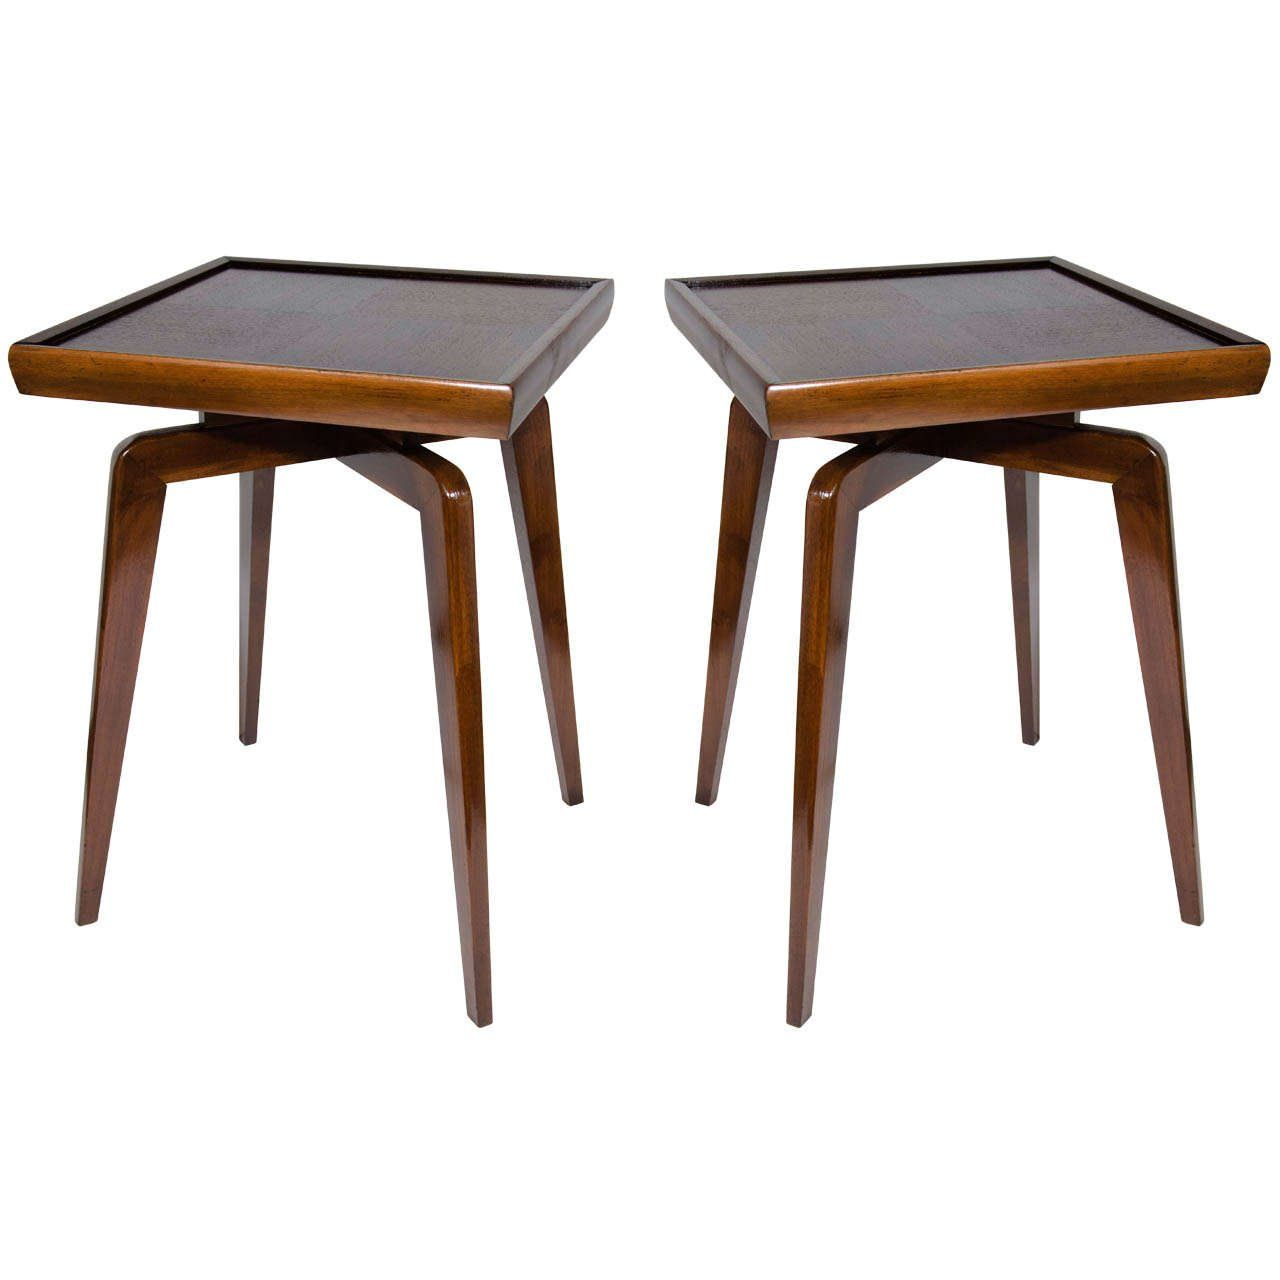 Bon Elegant Image Of Furniture For Living Room Decor With Mid Century Modern  Side Table : Killer Image Of Double Twin Decorative Wooden Mid Century  Modern Side ...